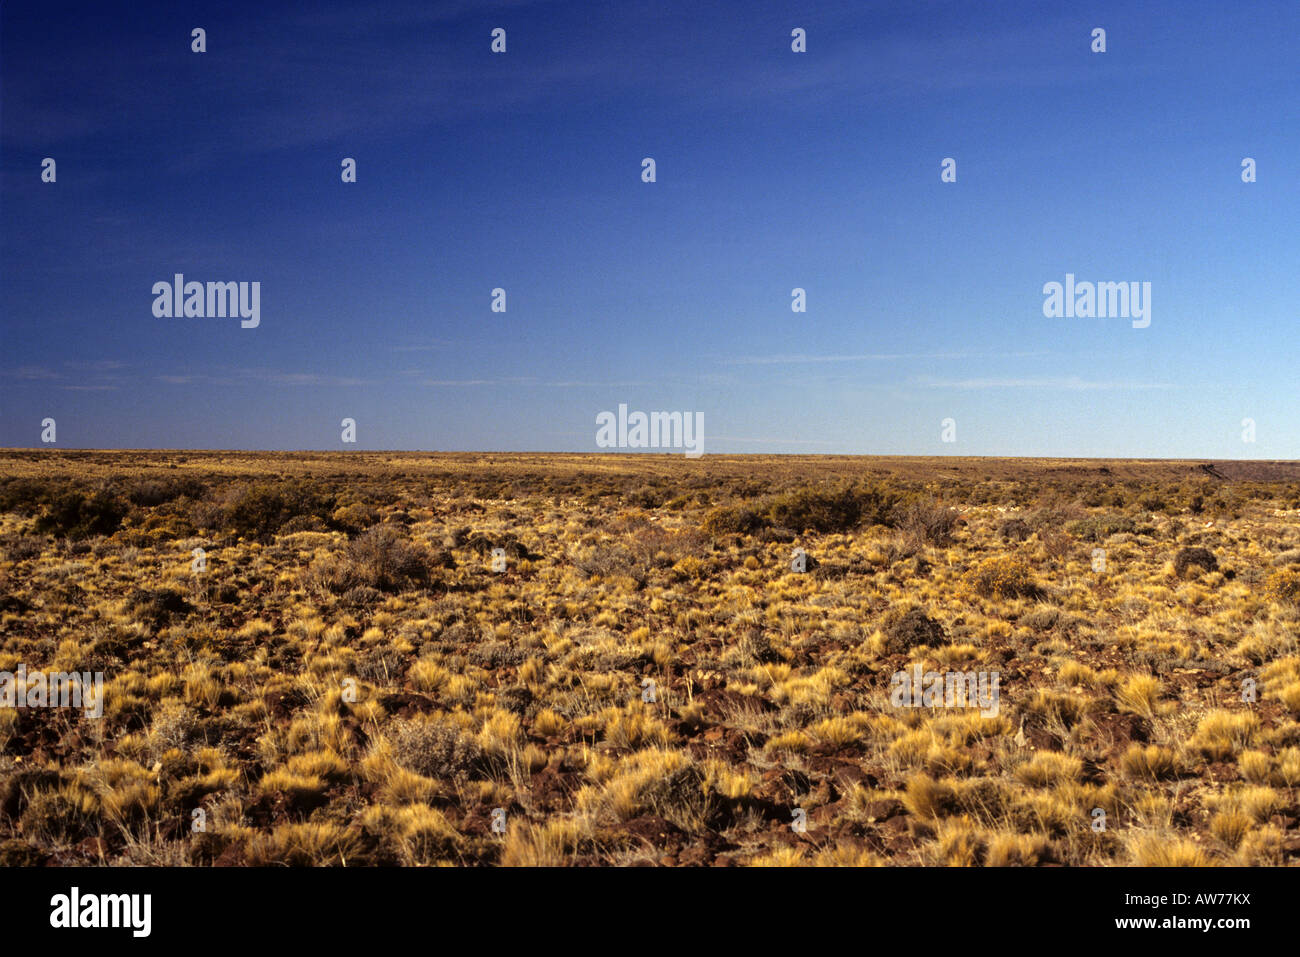 A view of the patagonic steppe in the Somuncura Plateau - Stock Image